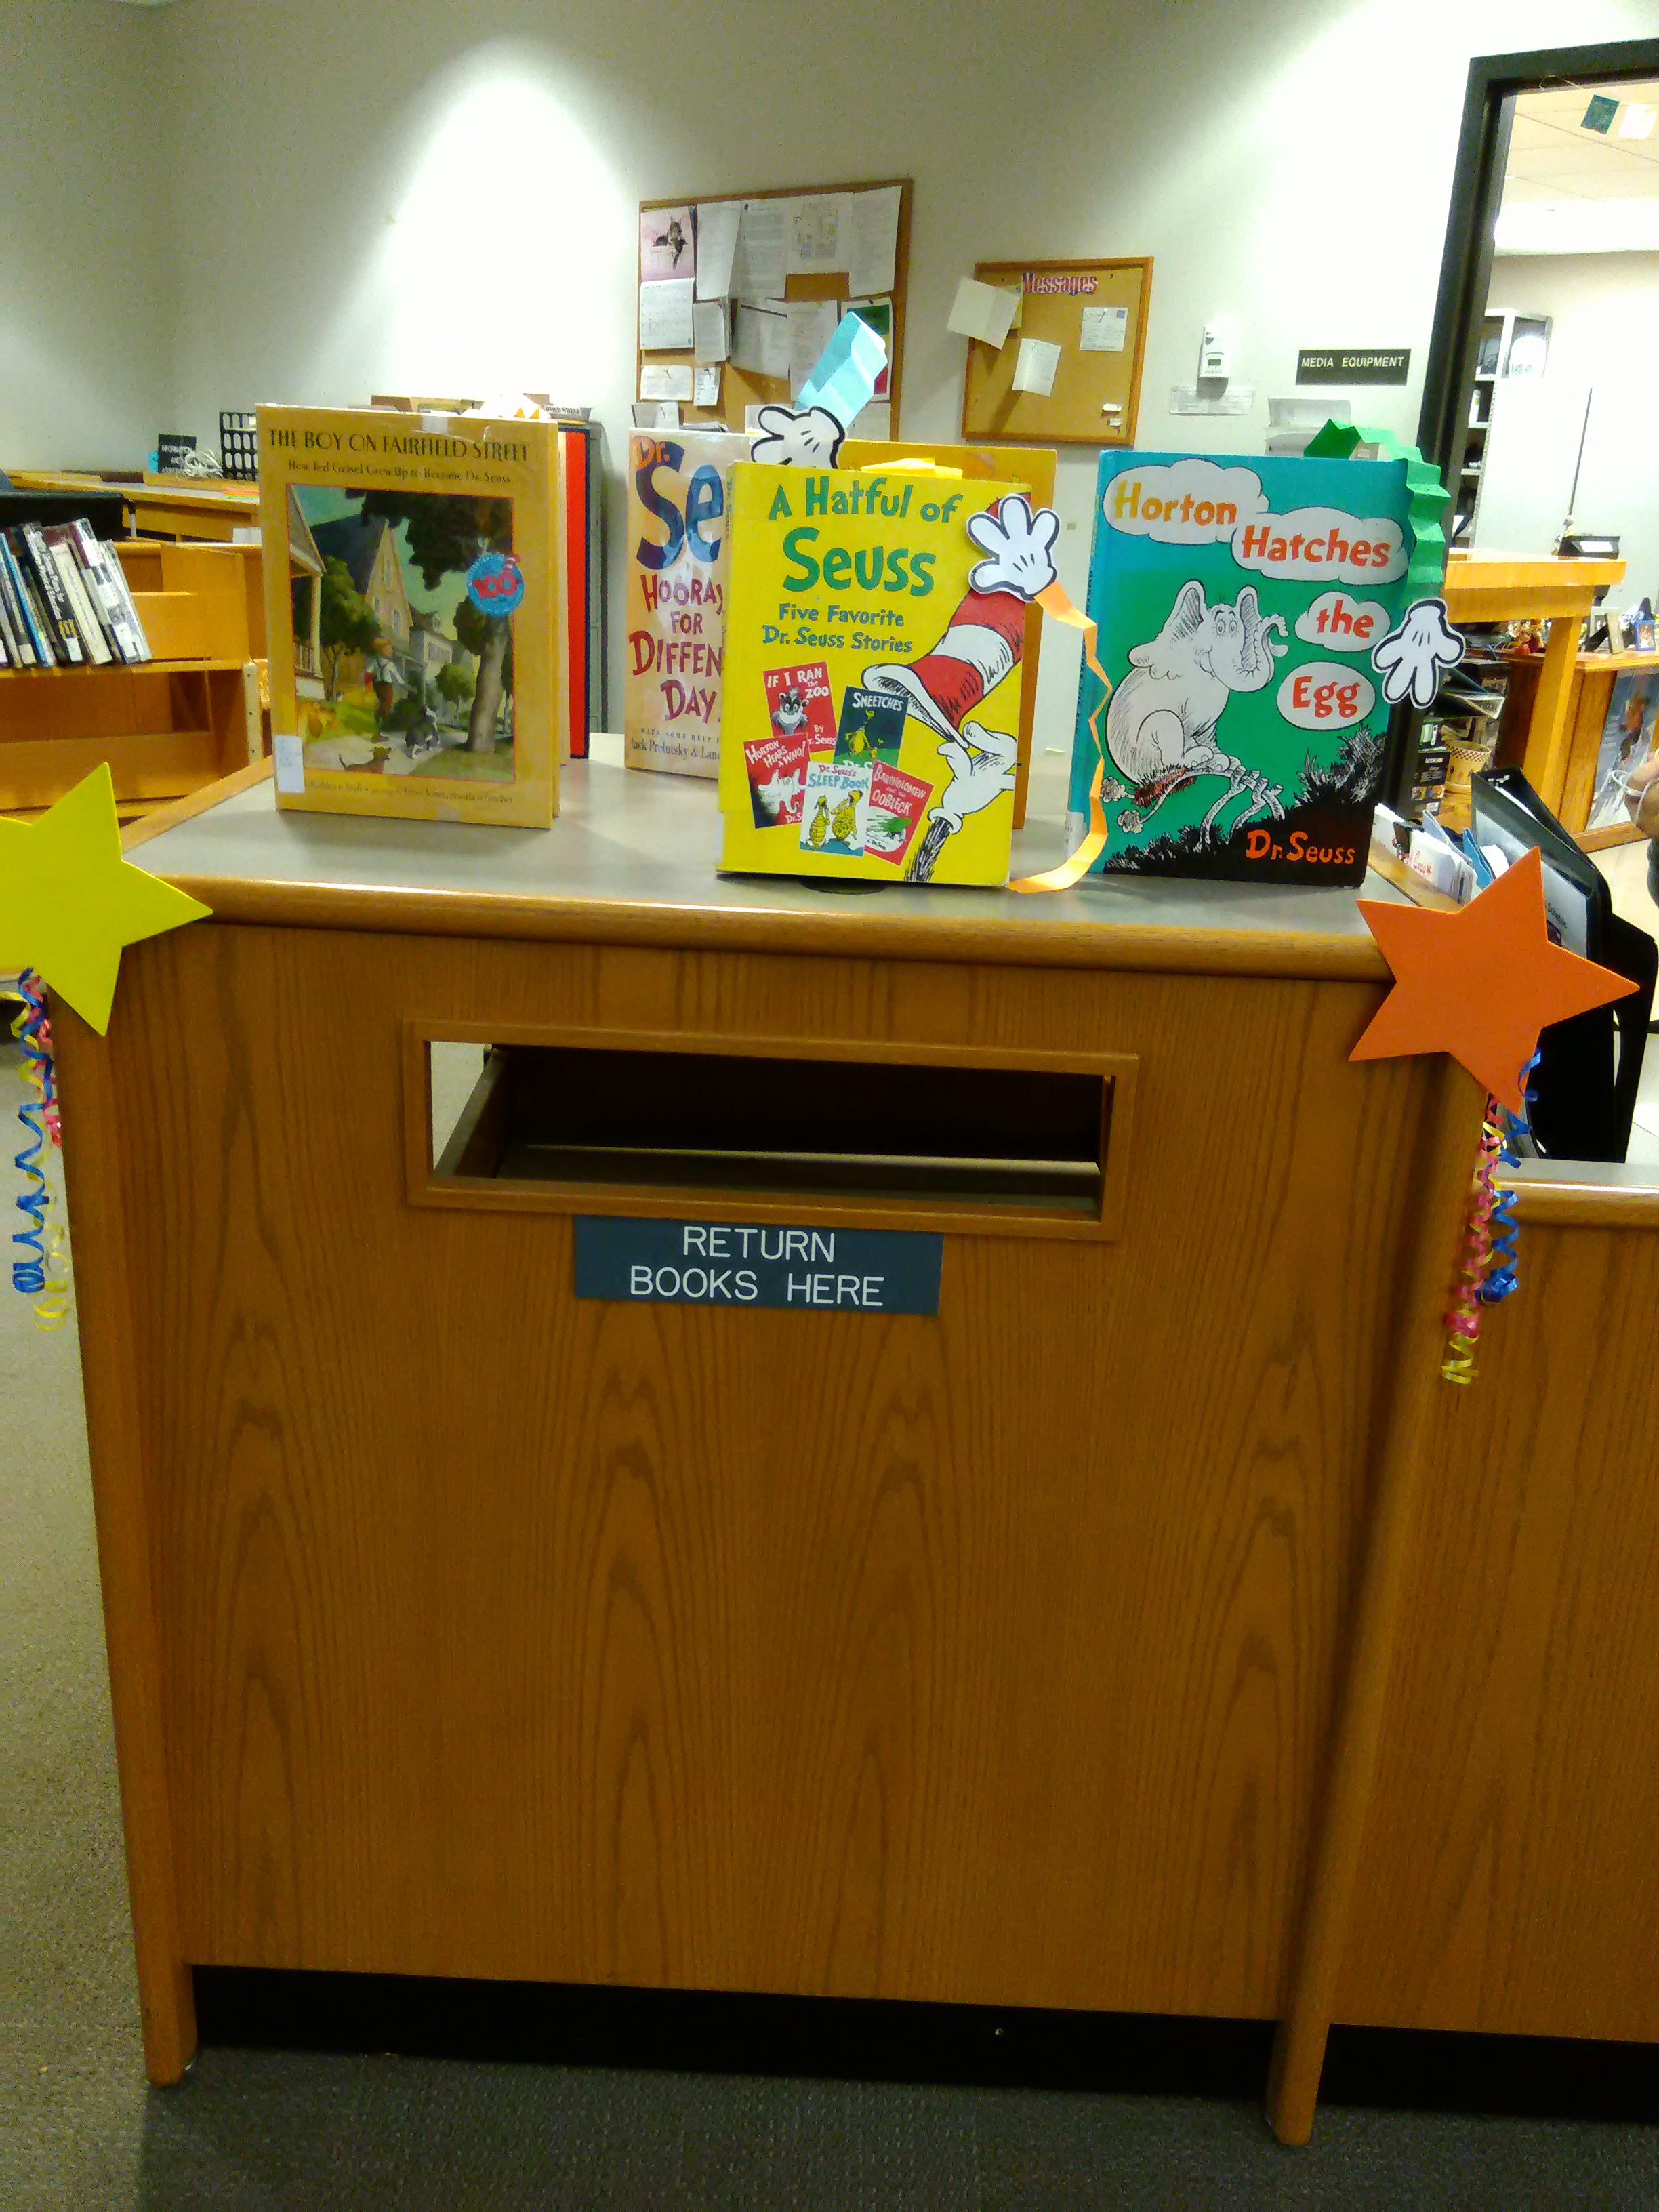 Display of Dr. Seuss books from our collection with colorful  accordion style hands popping out of the books